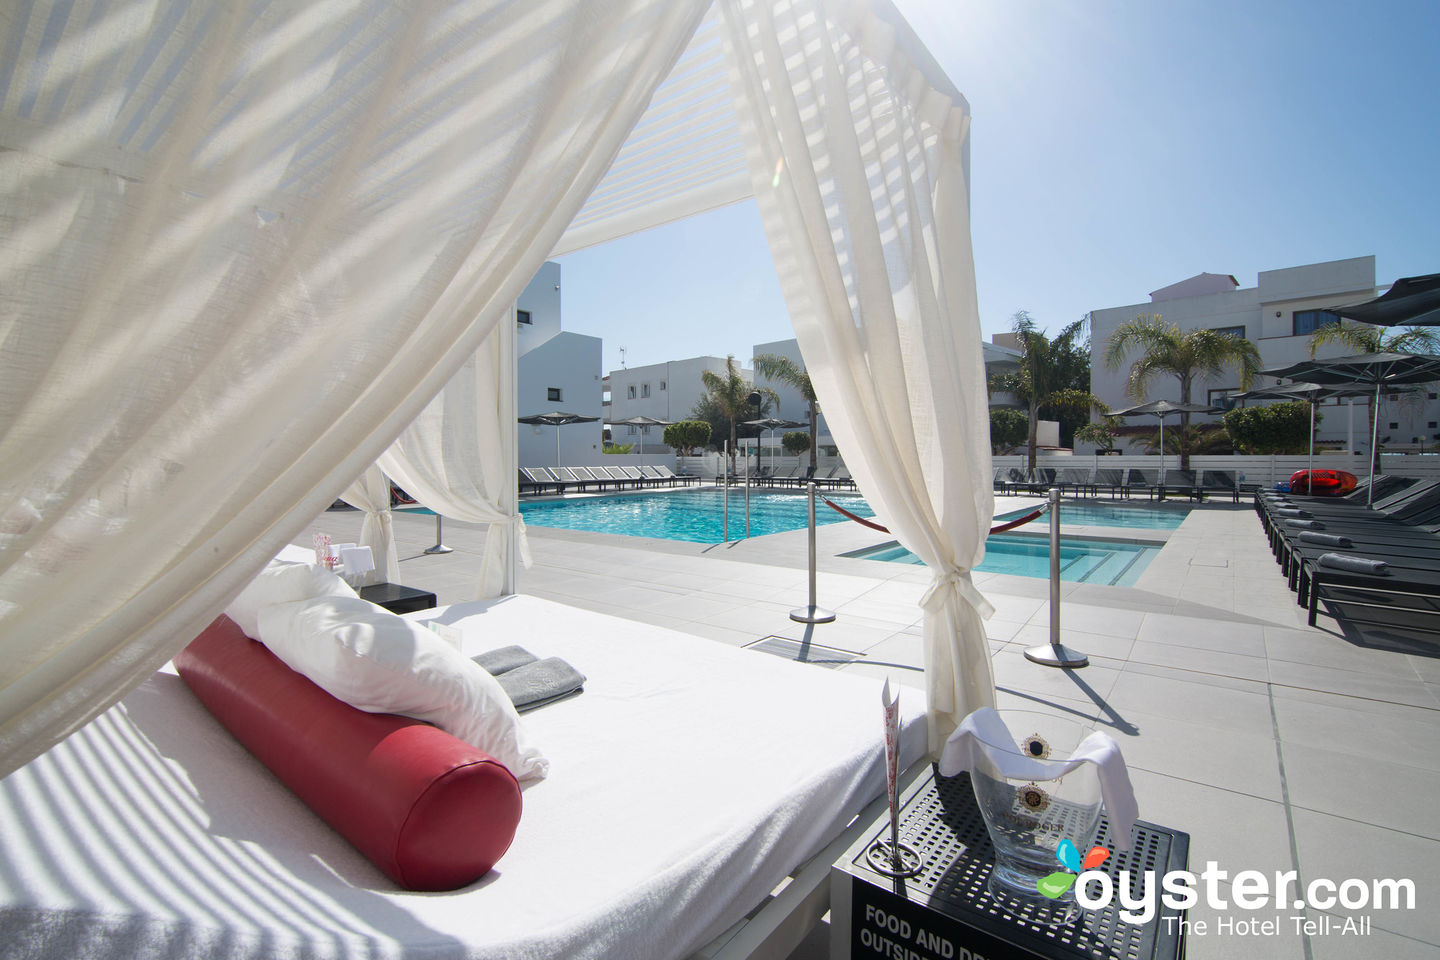 The Best Party Hotels in Ibiza | Oyster com